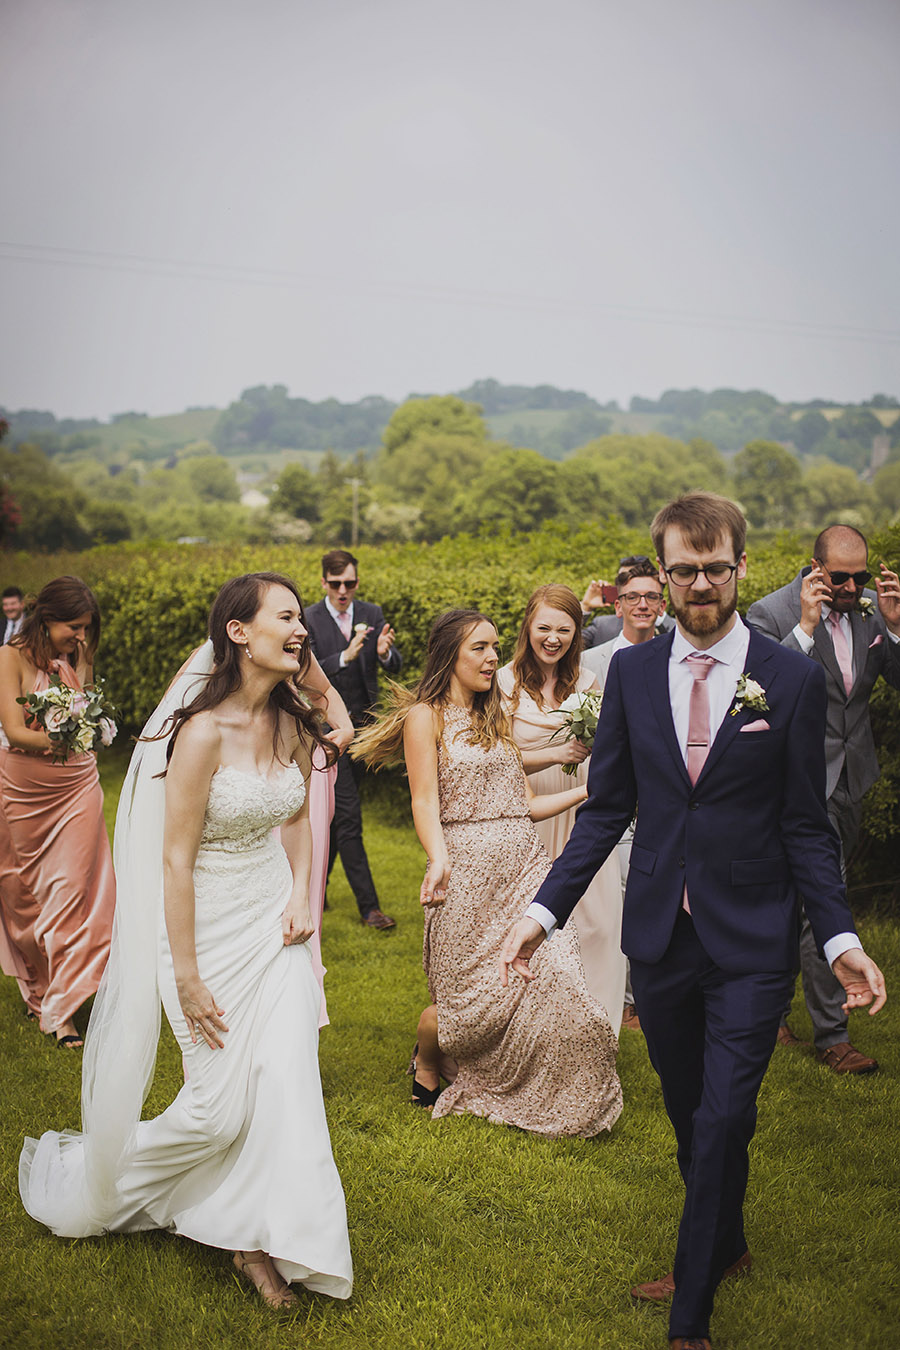 Relaxed outdoor wedding at Cott Farm Barn with images by Heather Birnie Photography on the English Wedding Blog (25)